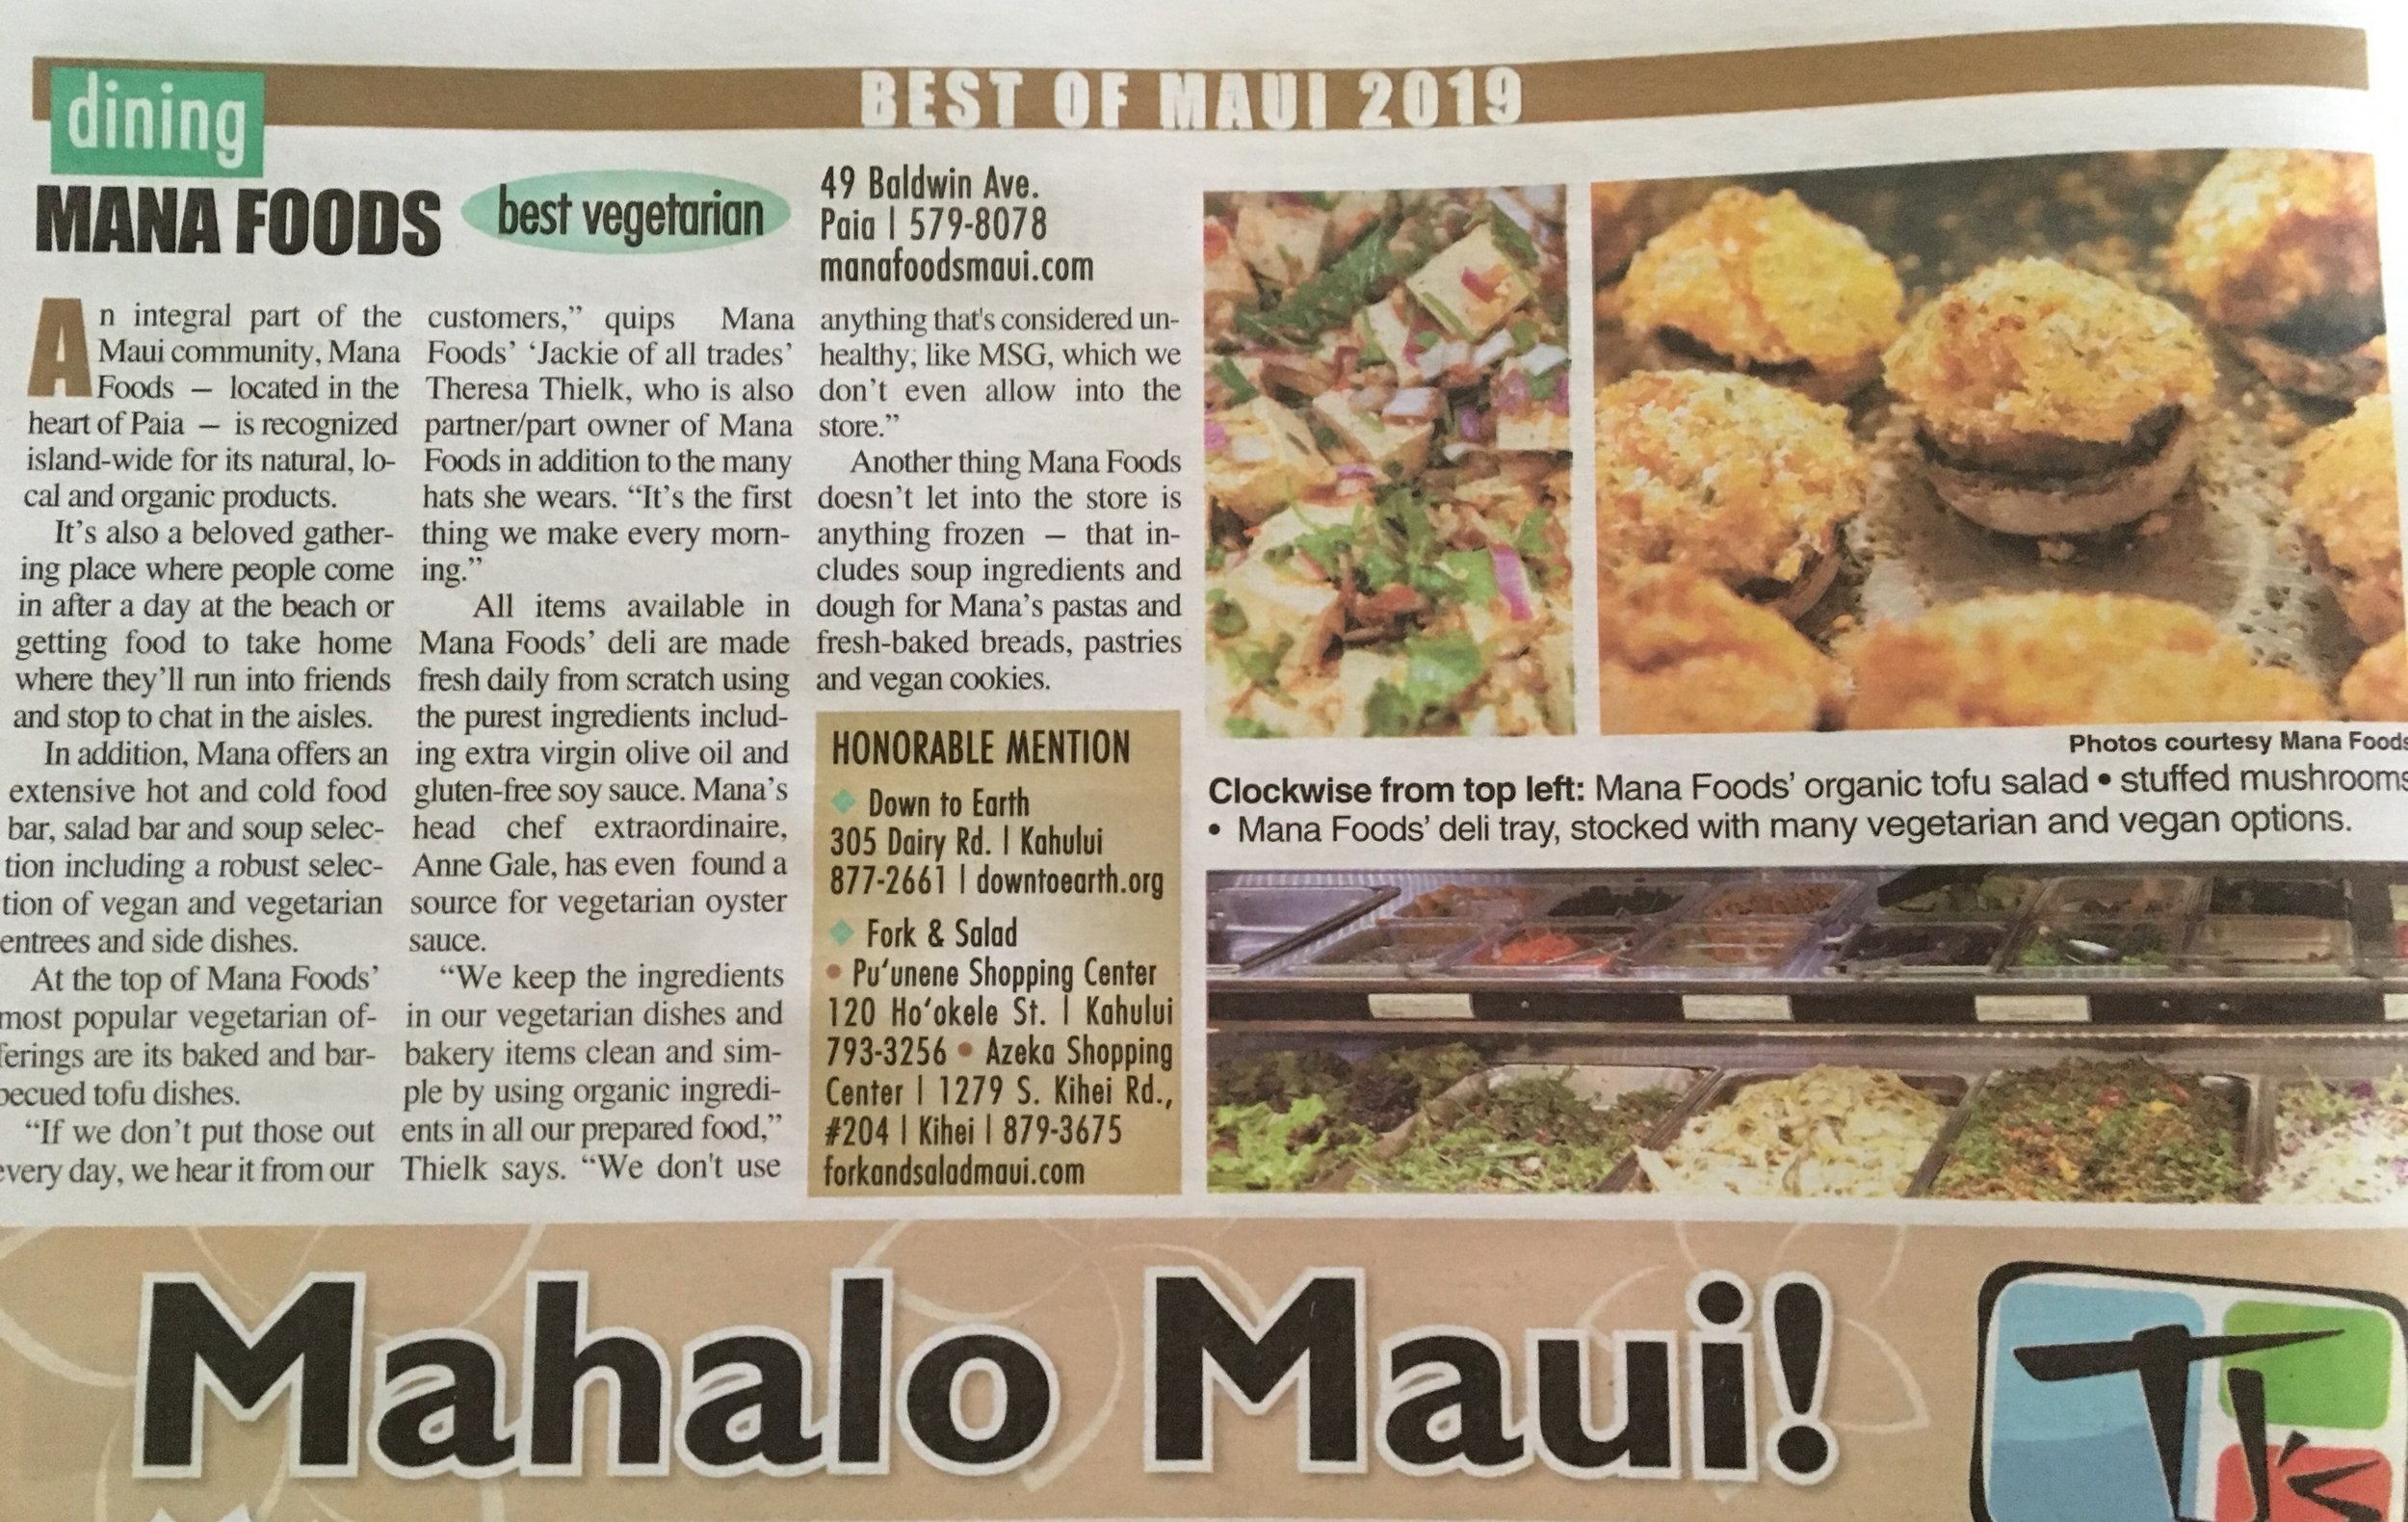 Image from The Maui News